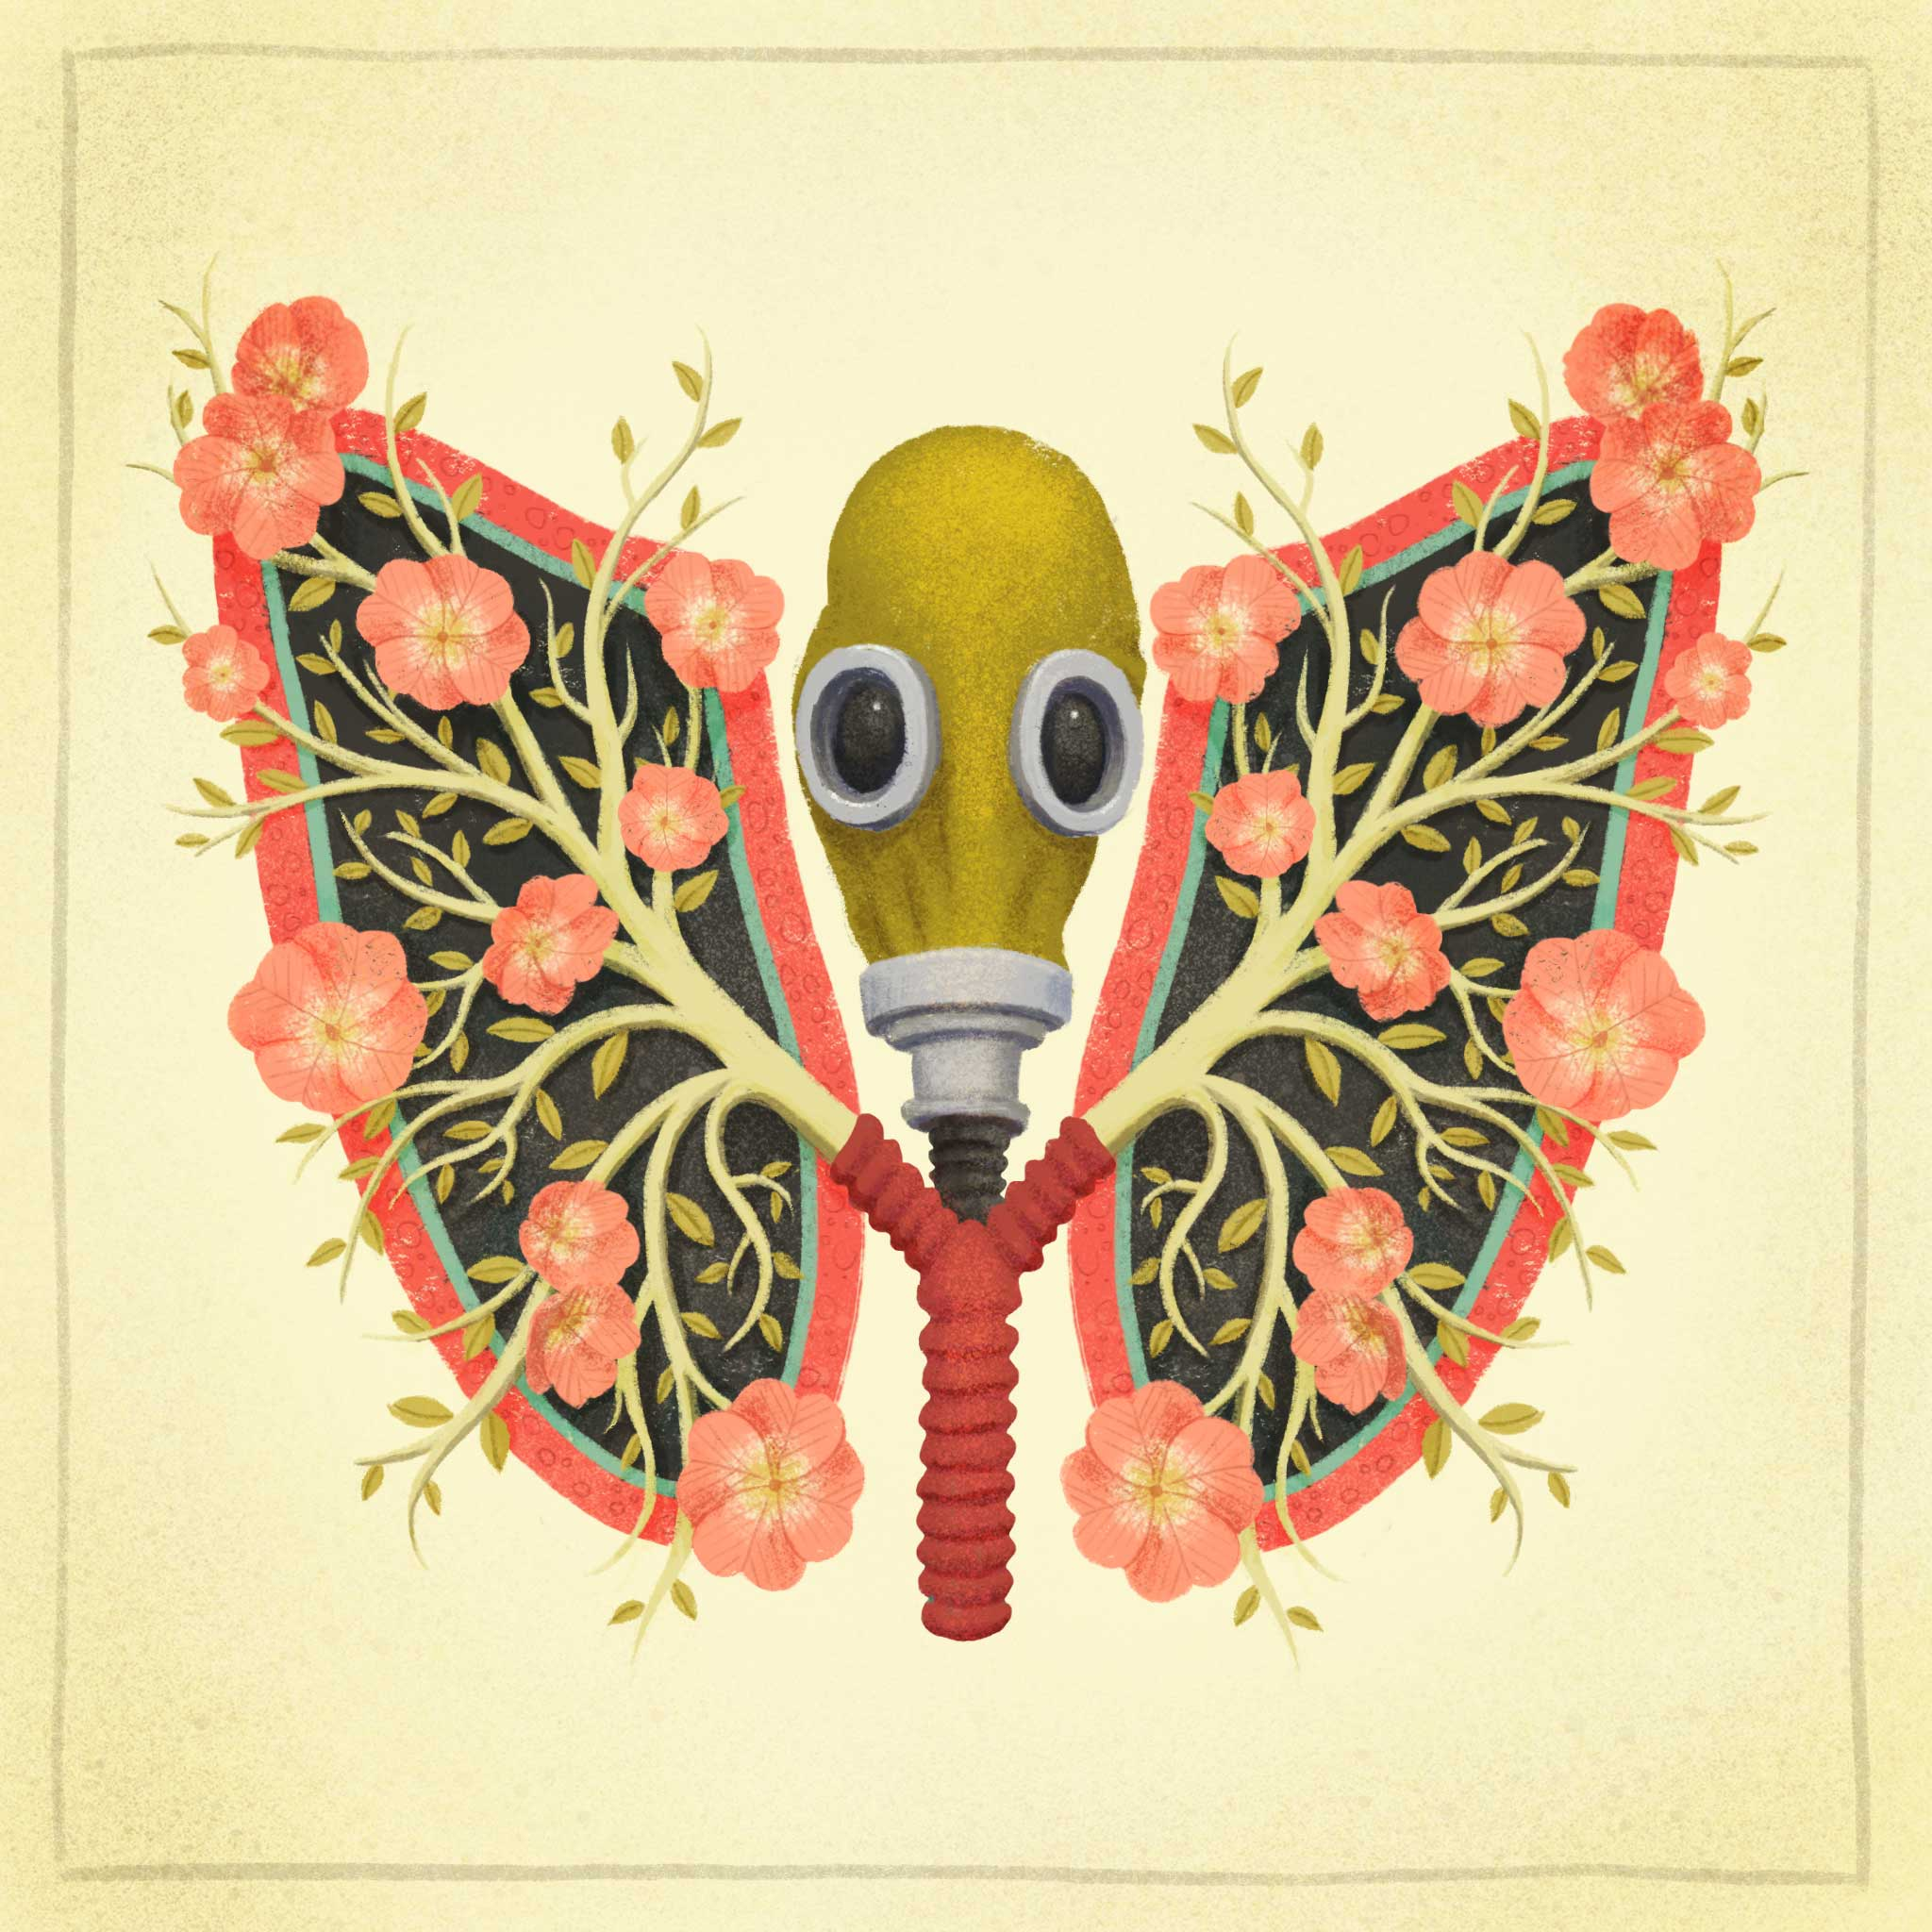 Blooming Breath - Anatomical Art by Dunaway Smith